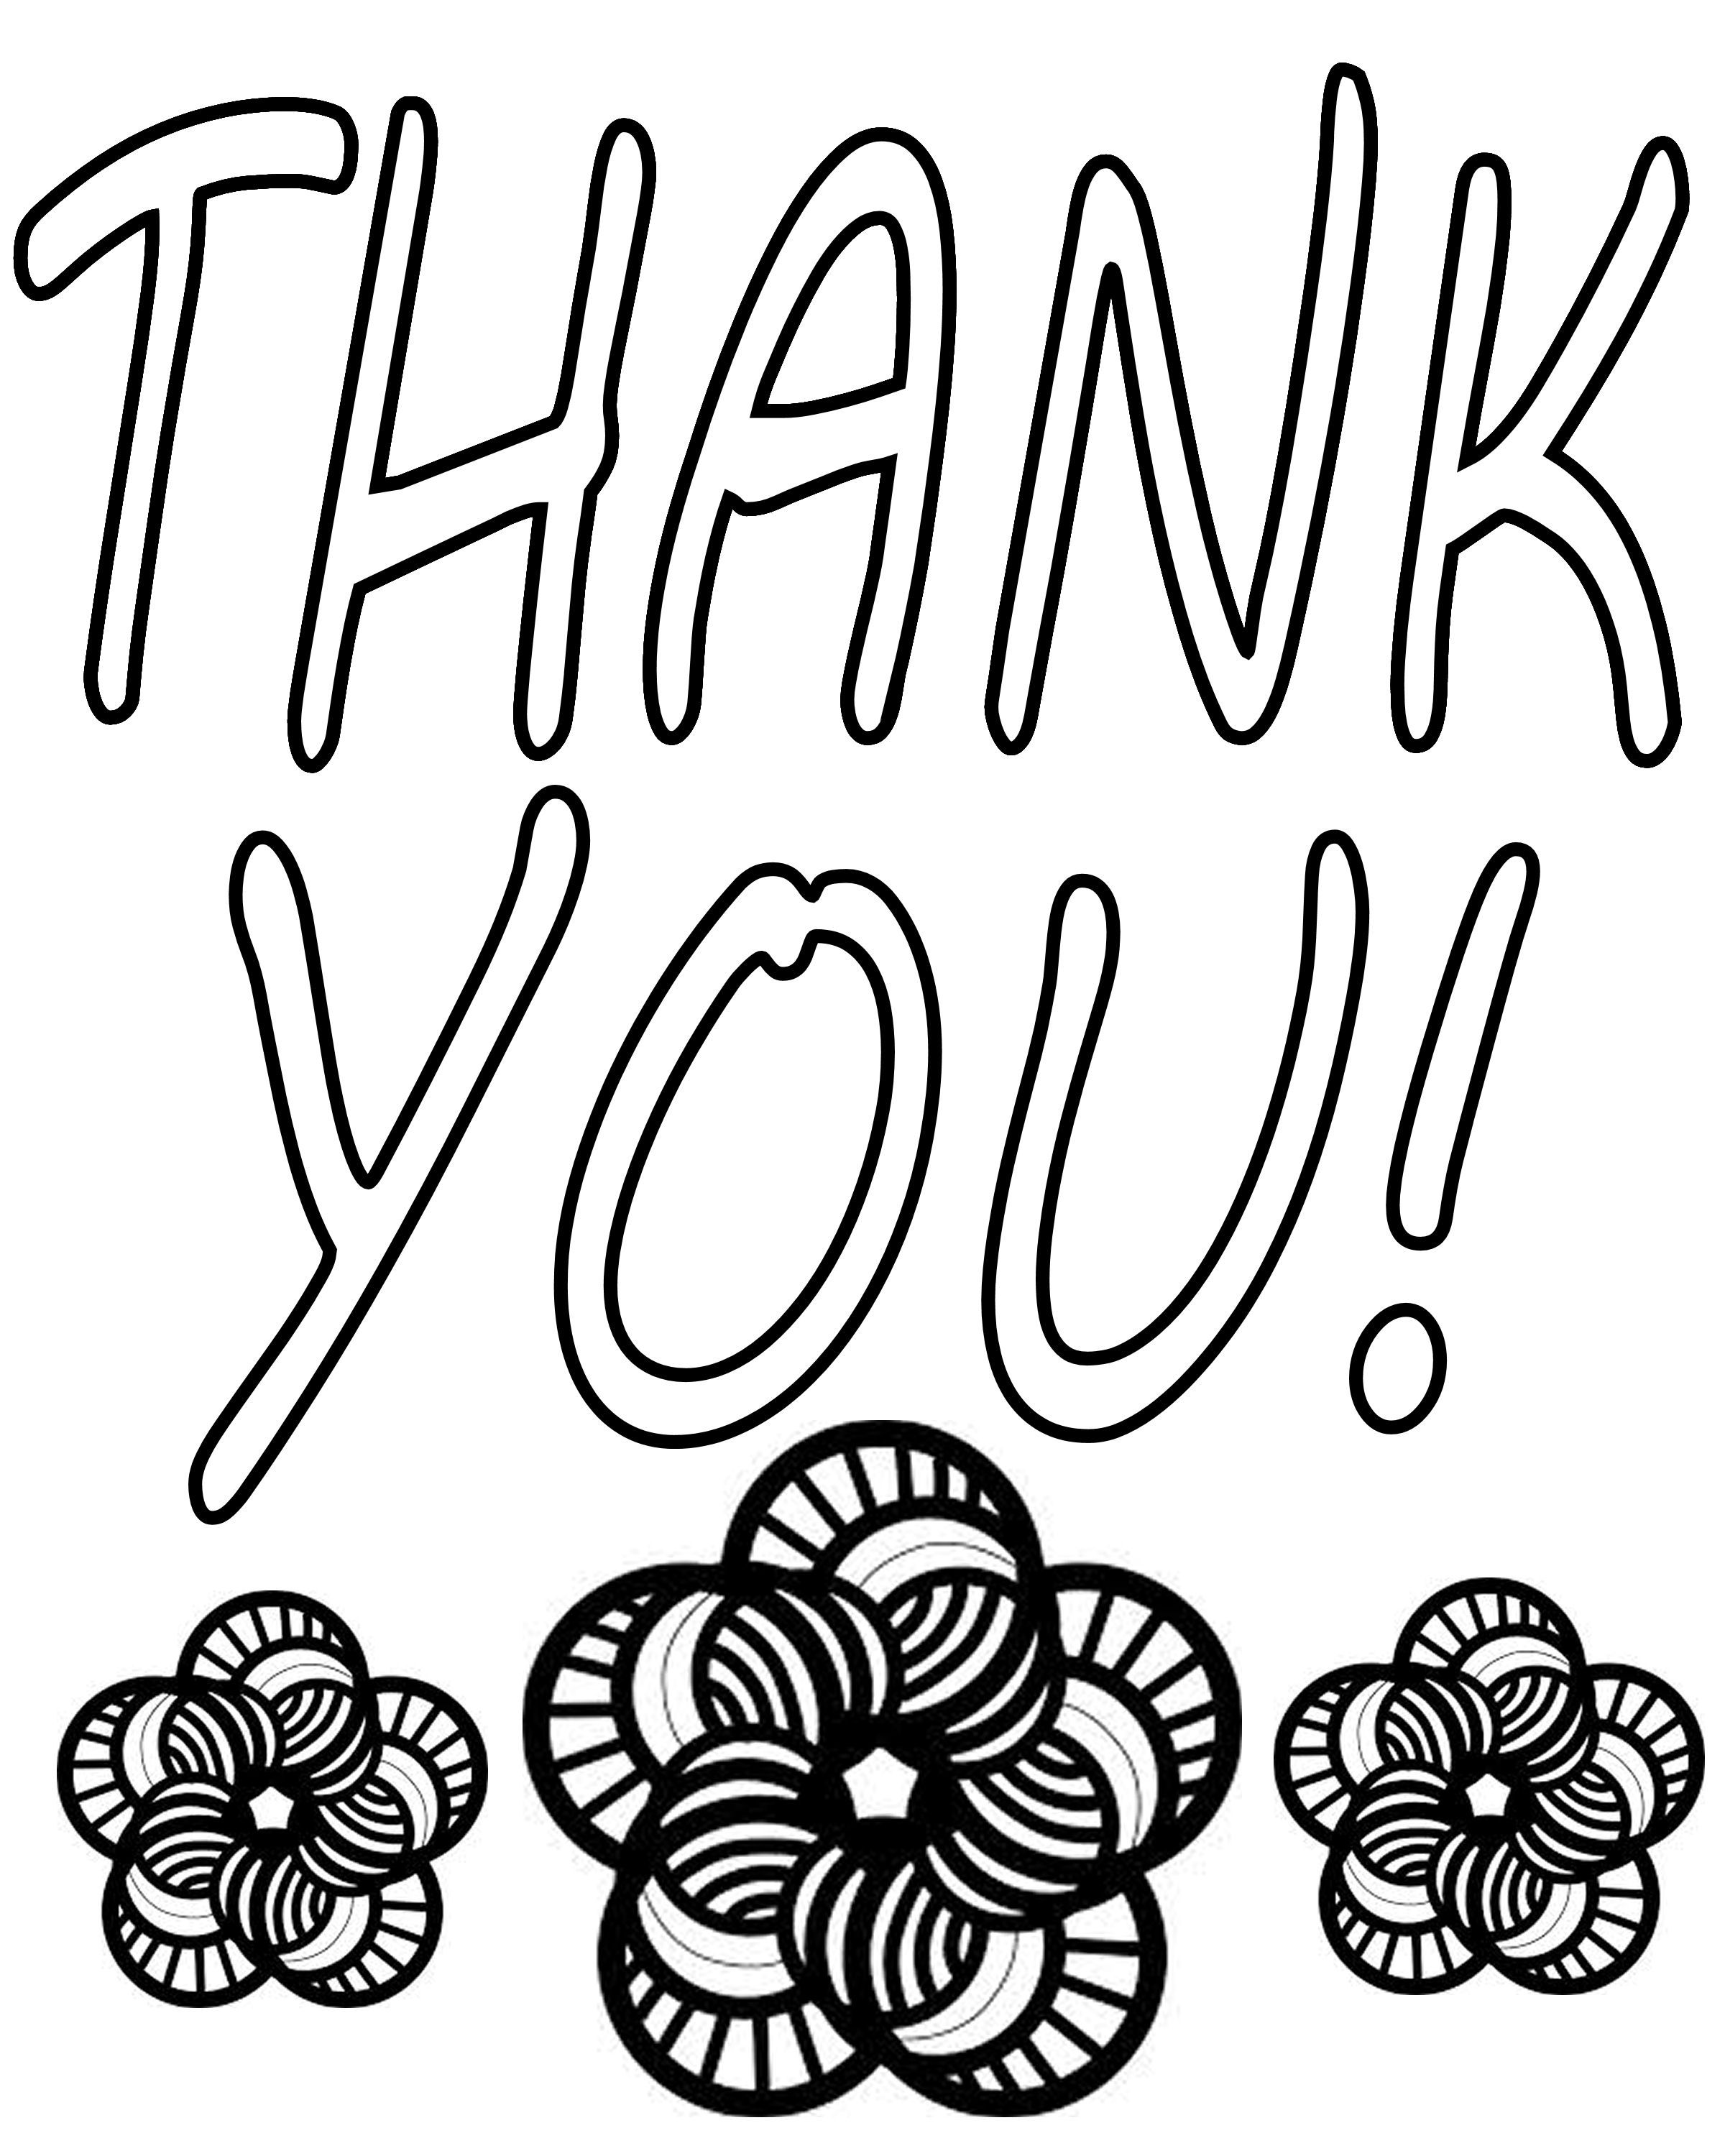 Thank You Coloring Pages Only Coloring Pages Heart Coloring Pages Coloring Pages For Kids Coloring Pages